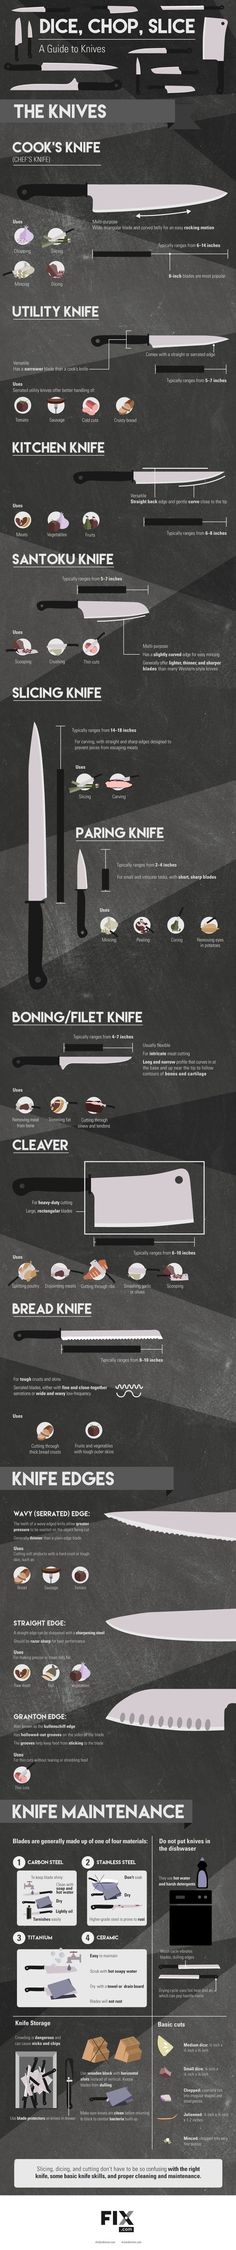 The Complete Kitchen Knife Guide [Infographic] | Kitchenability: